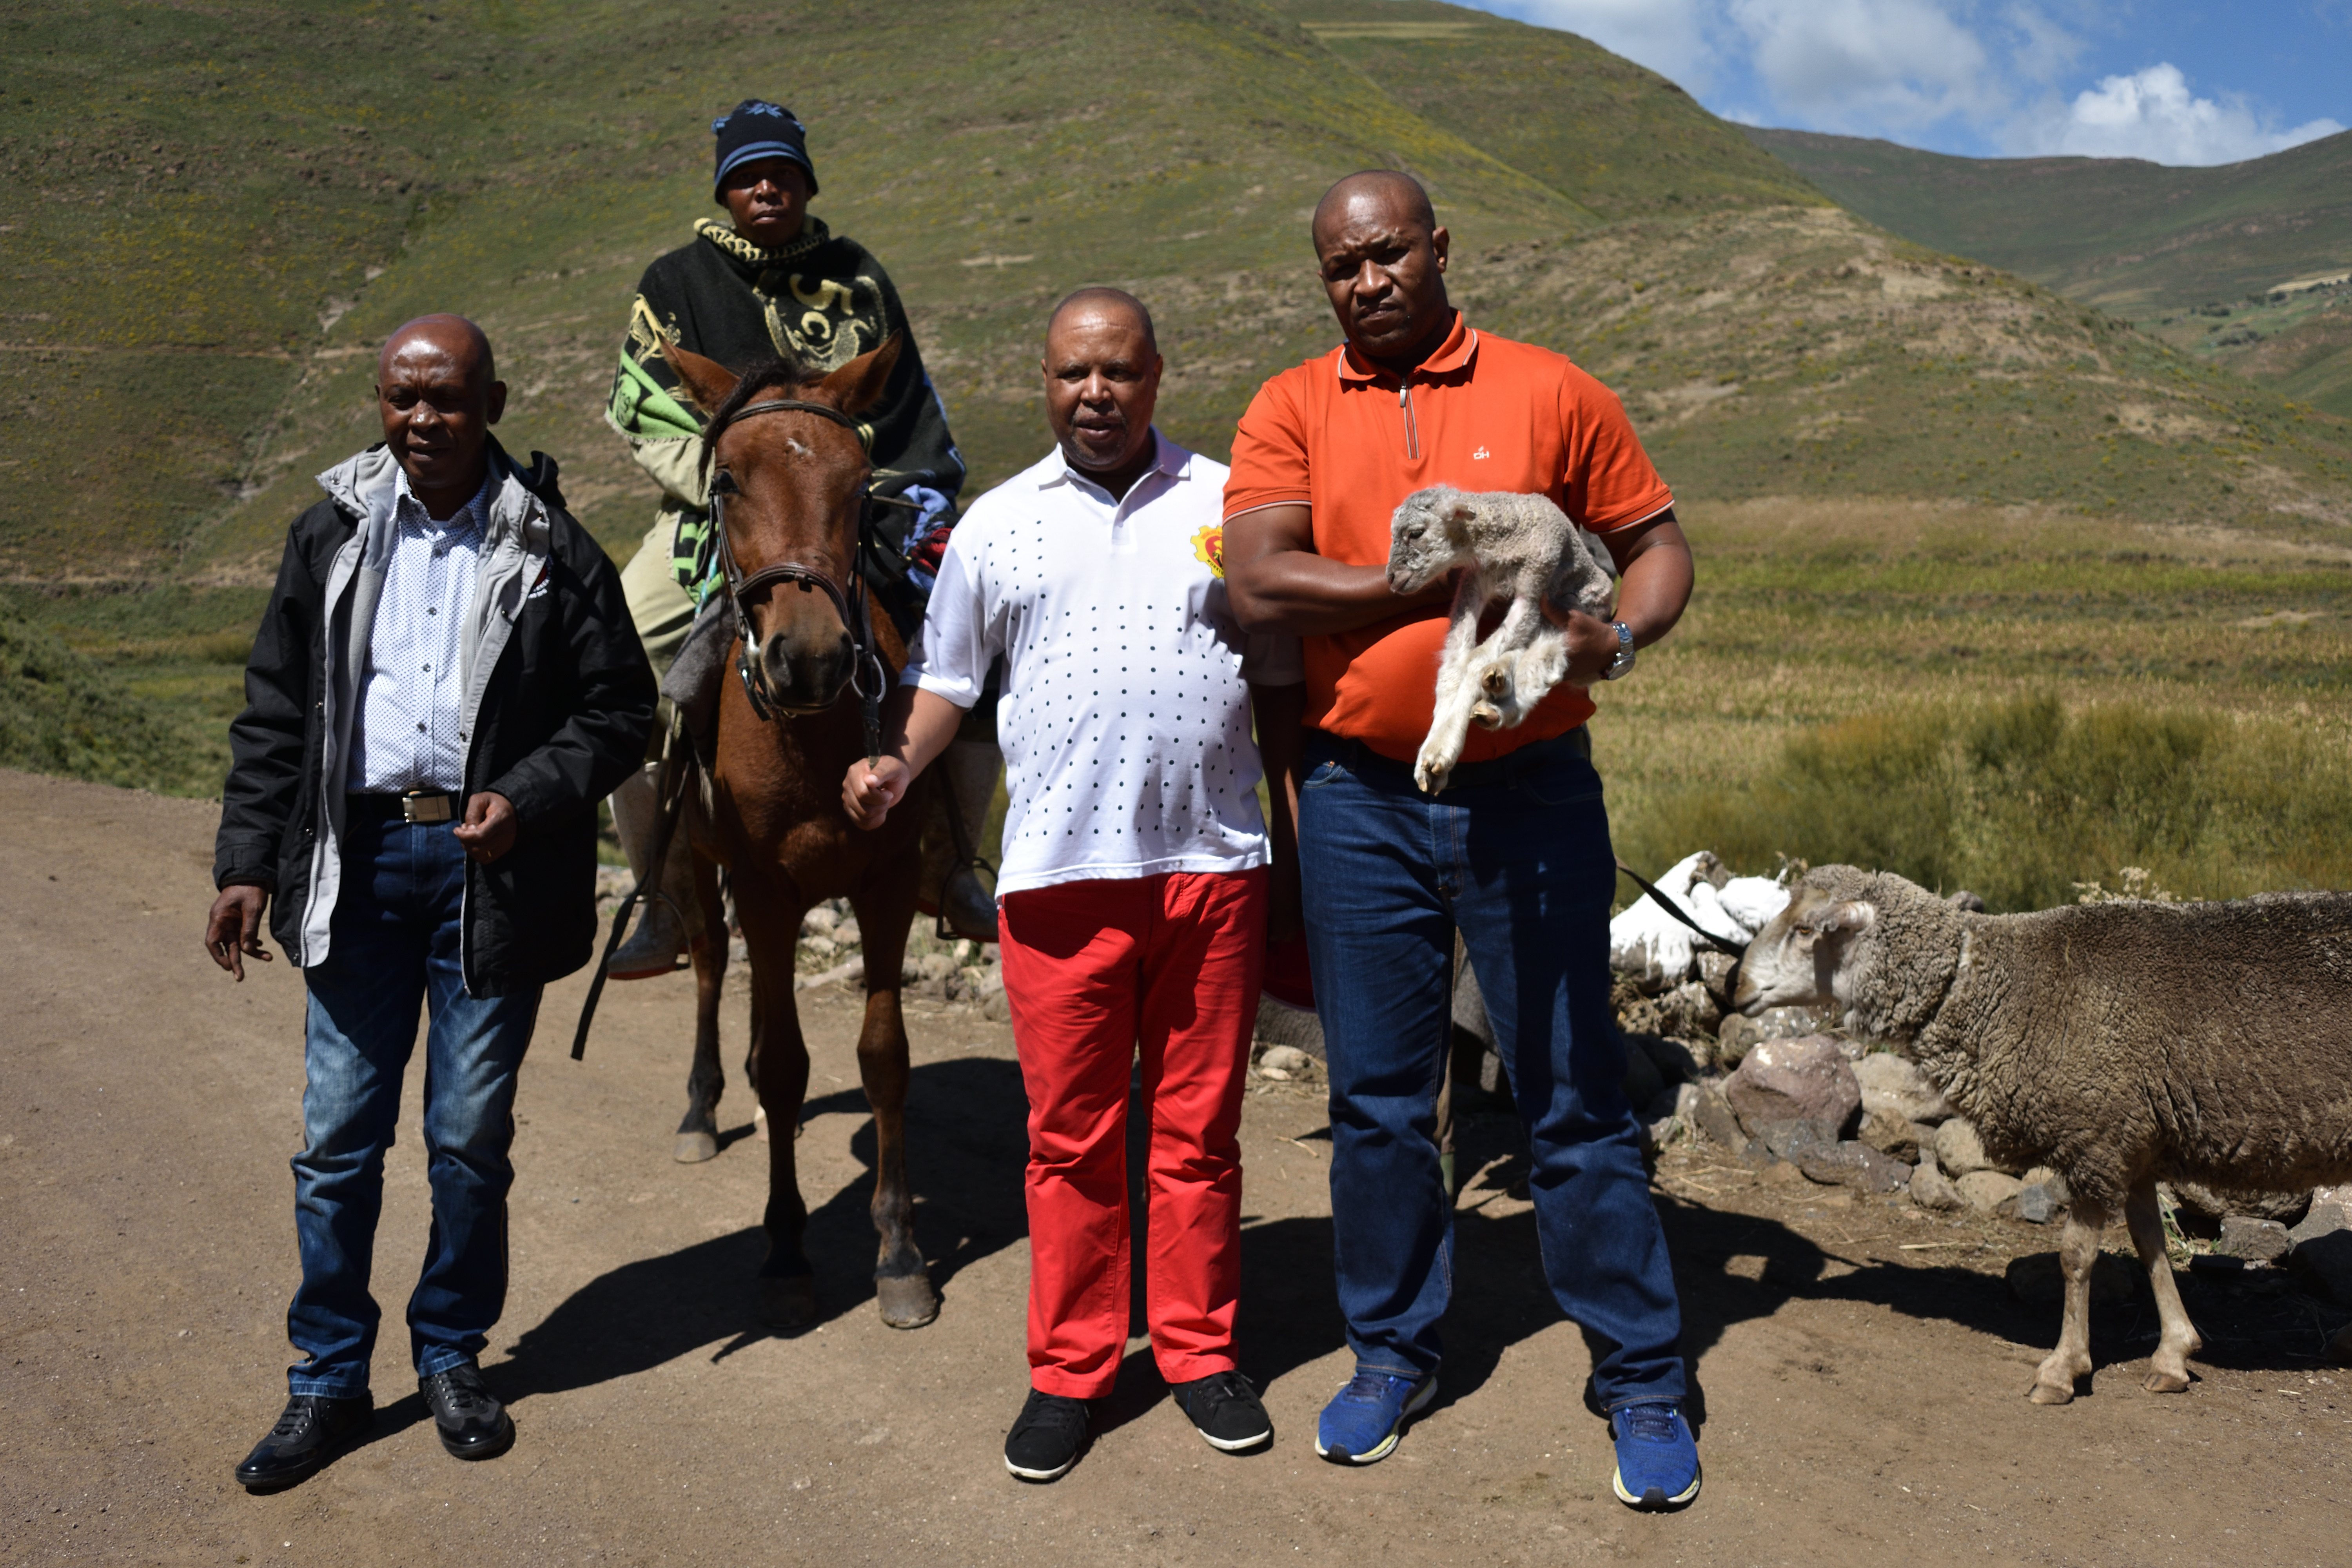 Organizing diamond mineworkers in the mountains of Lesotho